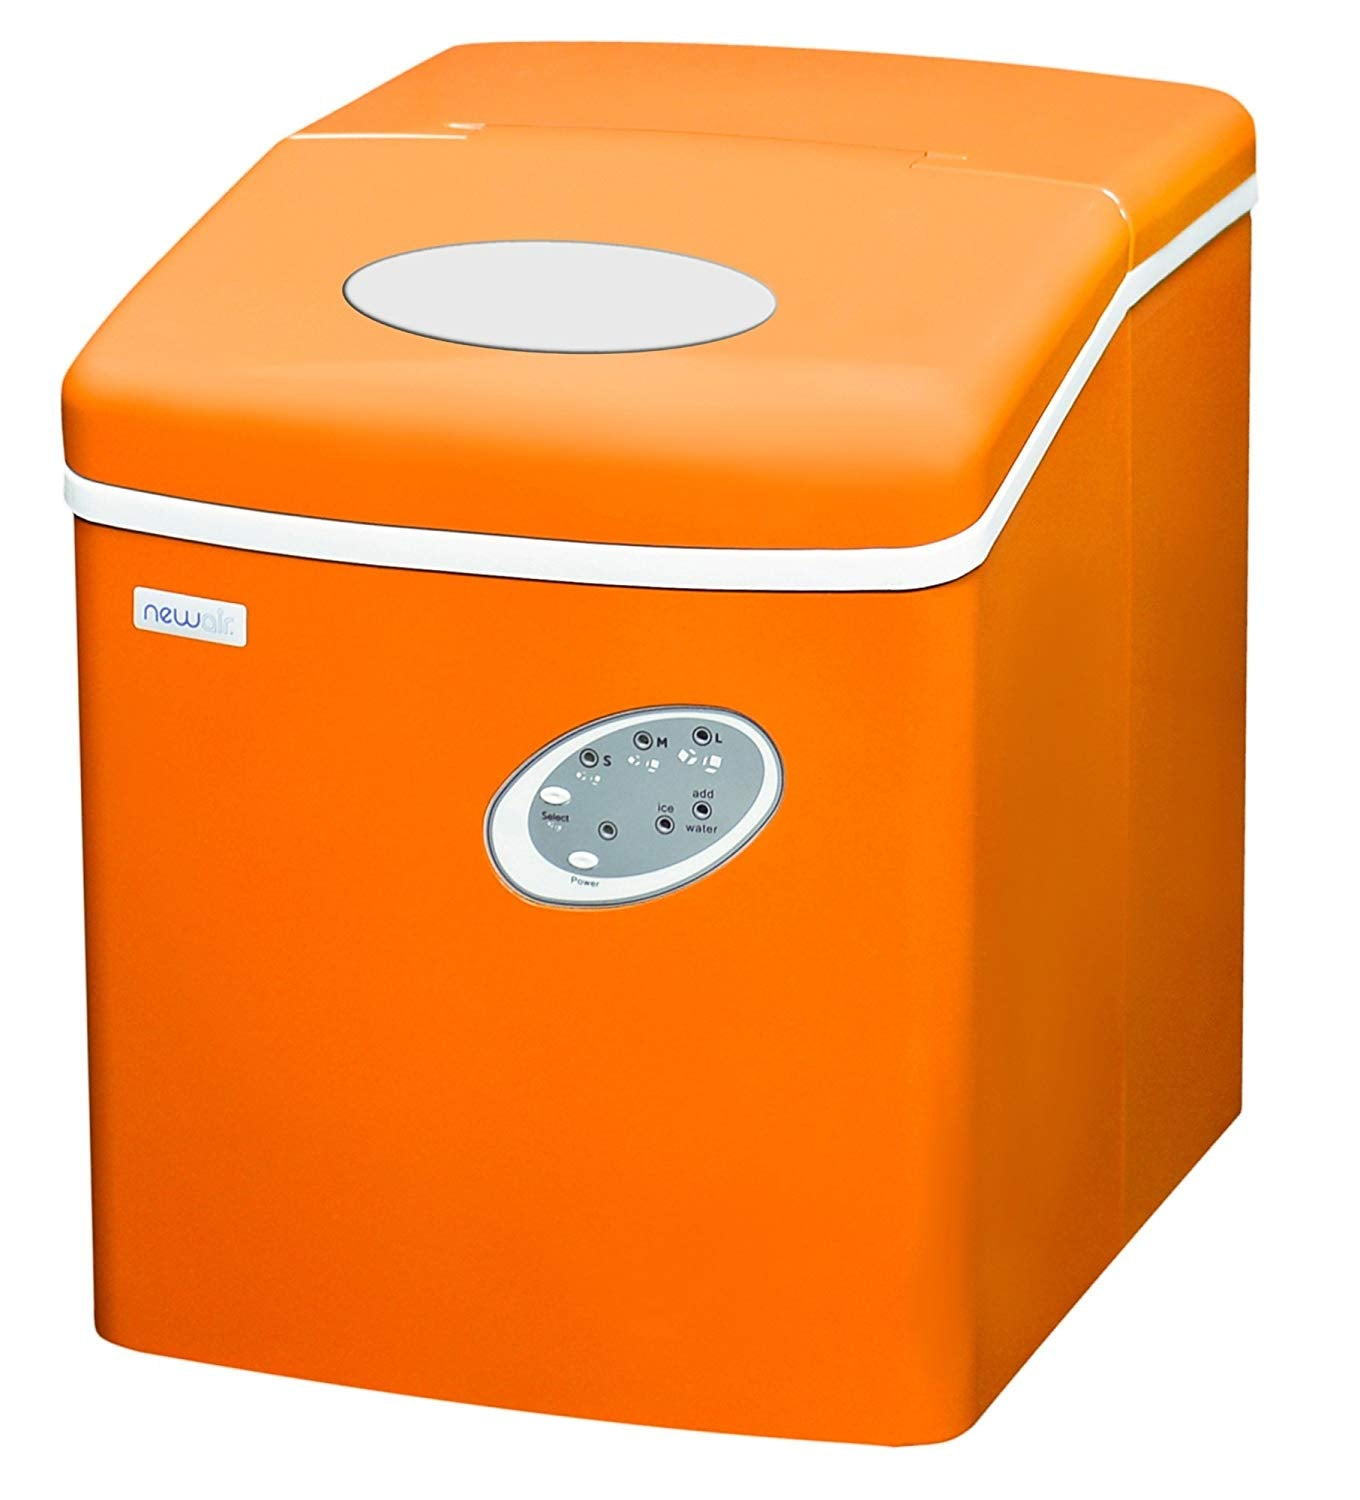 Portable Ice Maker 28 lb. Daily, Countertop Compact Design, 3 Size Bullet Shaped Ice, AI-100VO, Orange